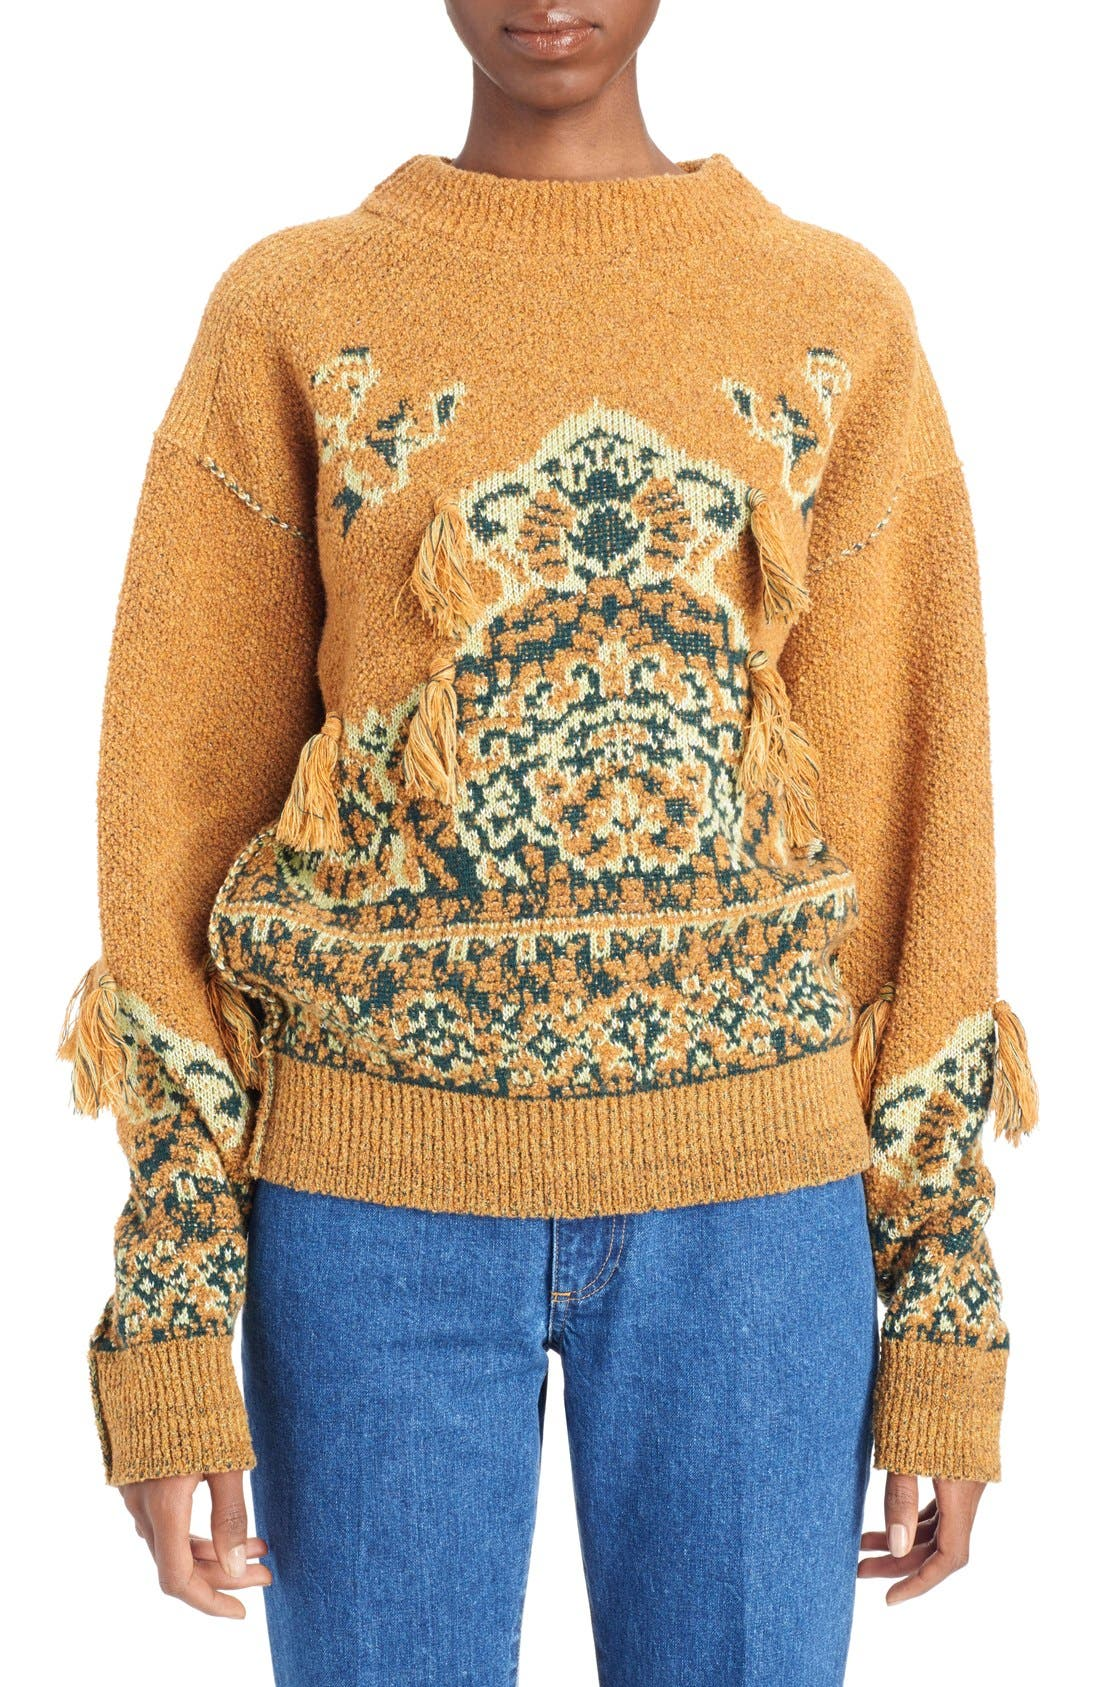 Tassel Wool Blend Sweater,                             Main thumbnail 1, color,                             700